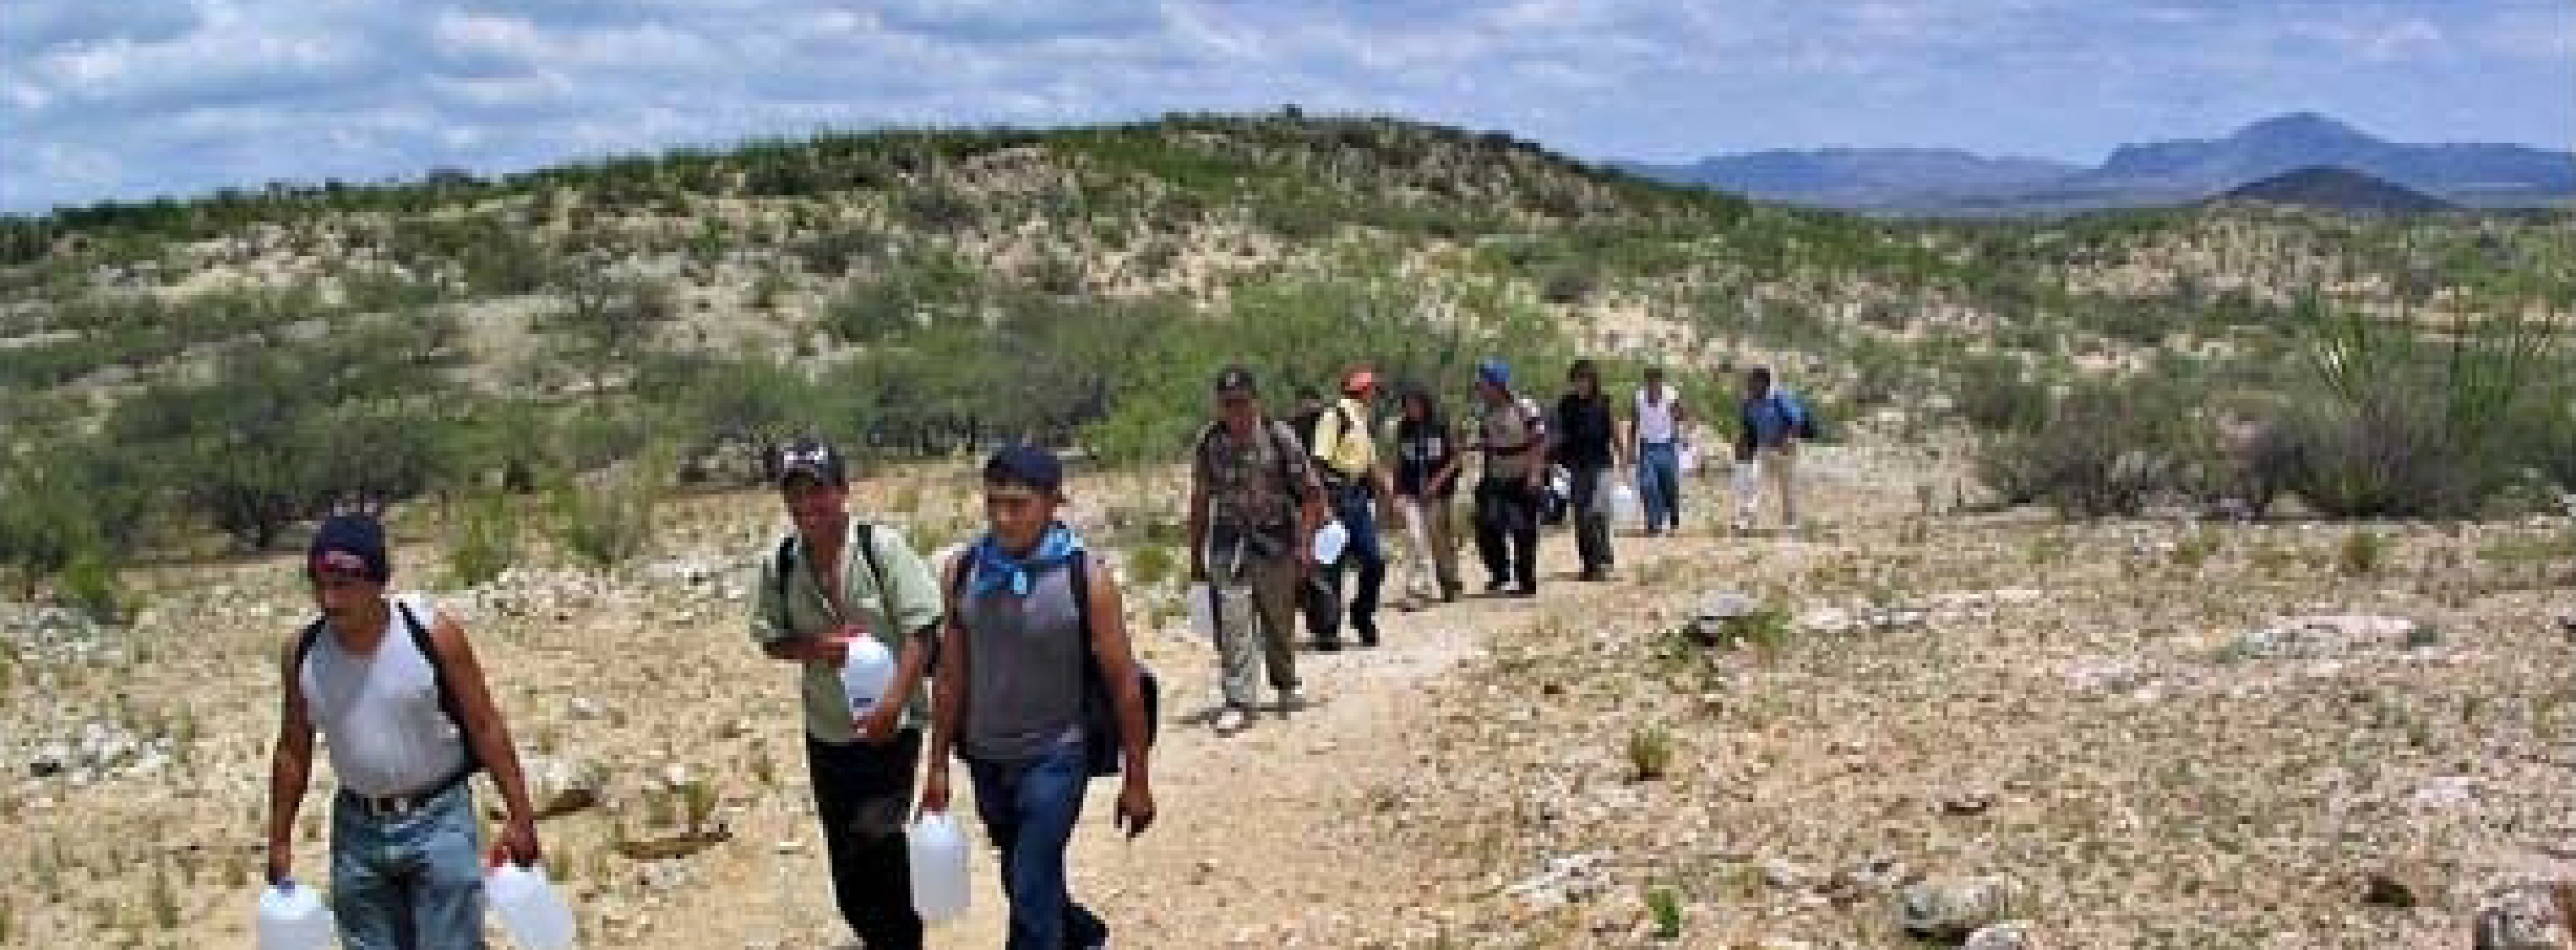 Sheriff: Without Secure Border Every County Will Be 'A Border County' | US Defense Watch